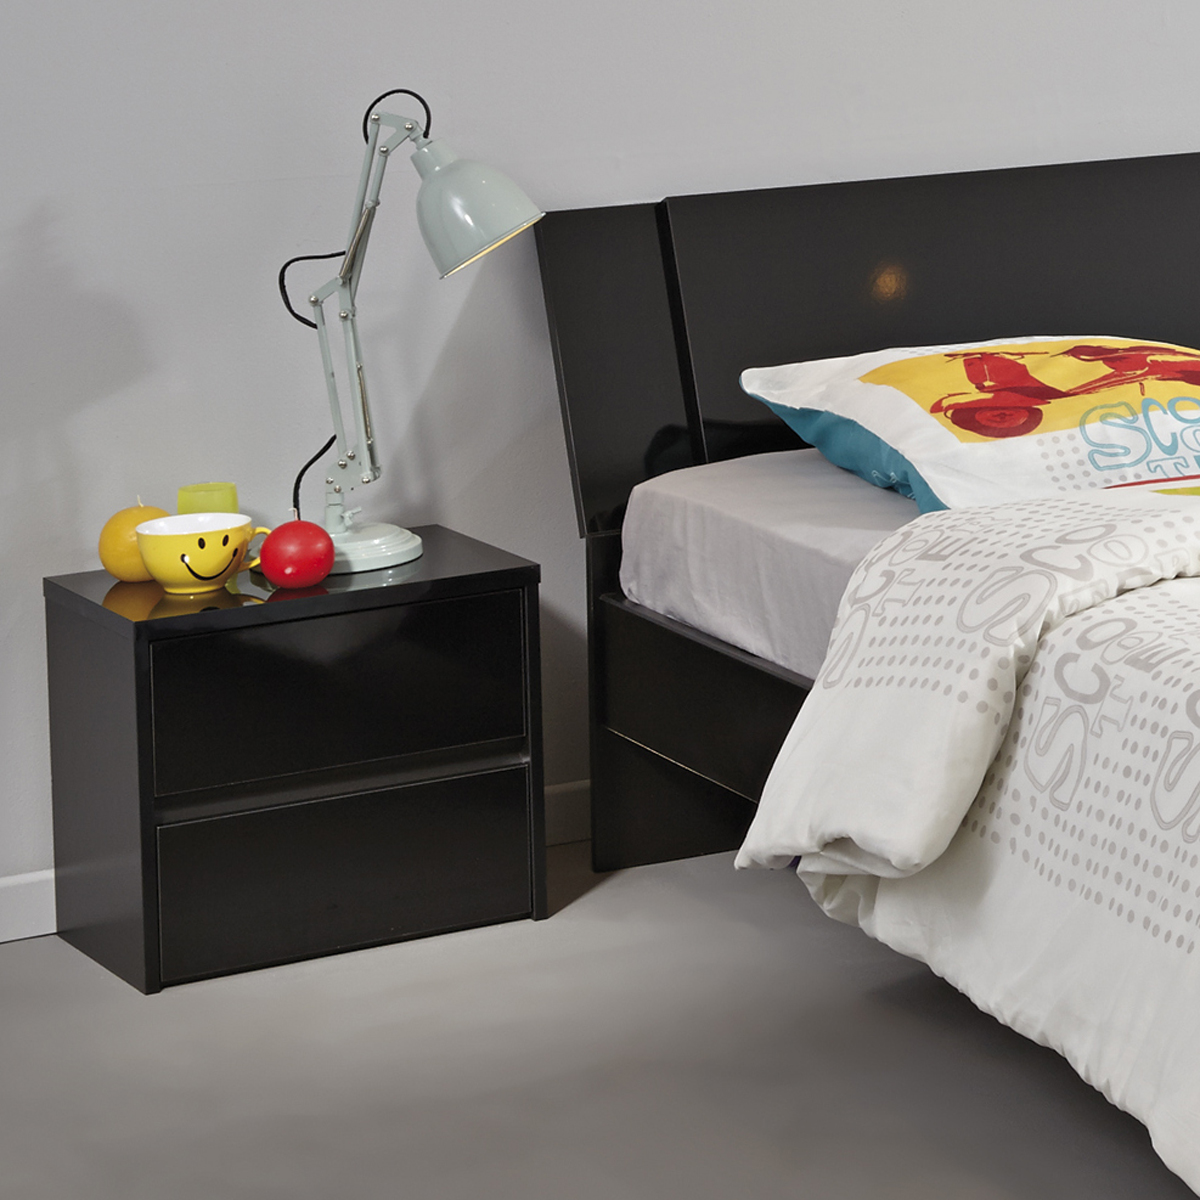 nachtkonsole ontario 19 nachttisch nachtkommode schwarz hochglanz 2 sk ebay. Black Bedroom Furniture Sets. Home Design Ideas